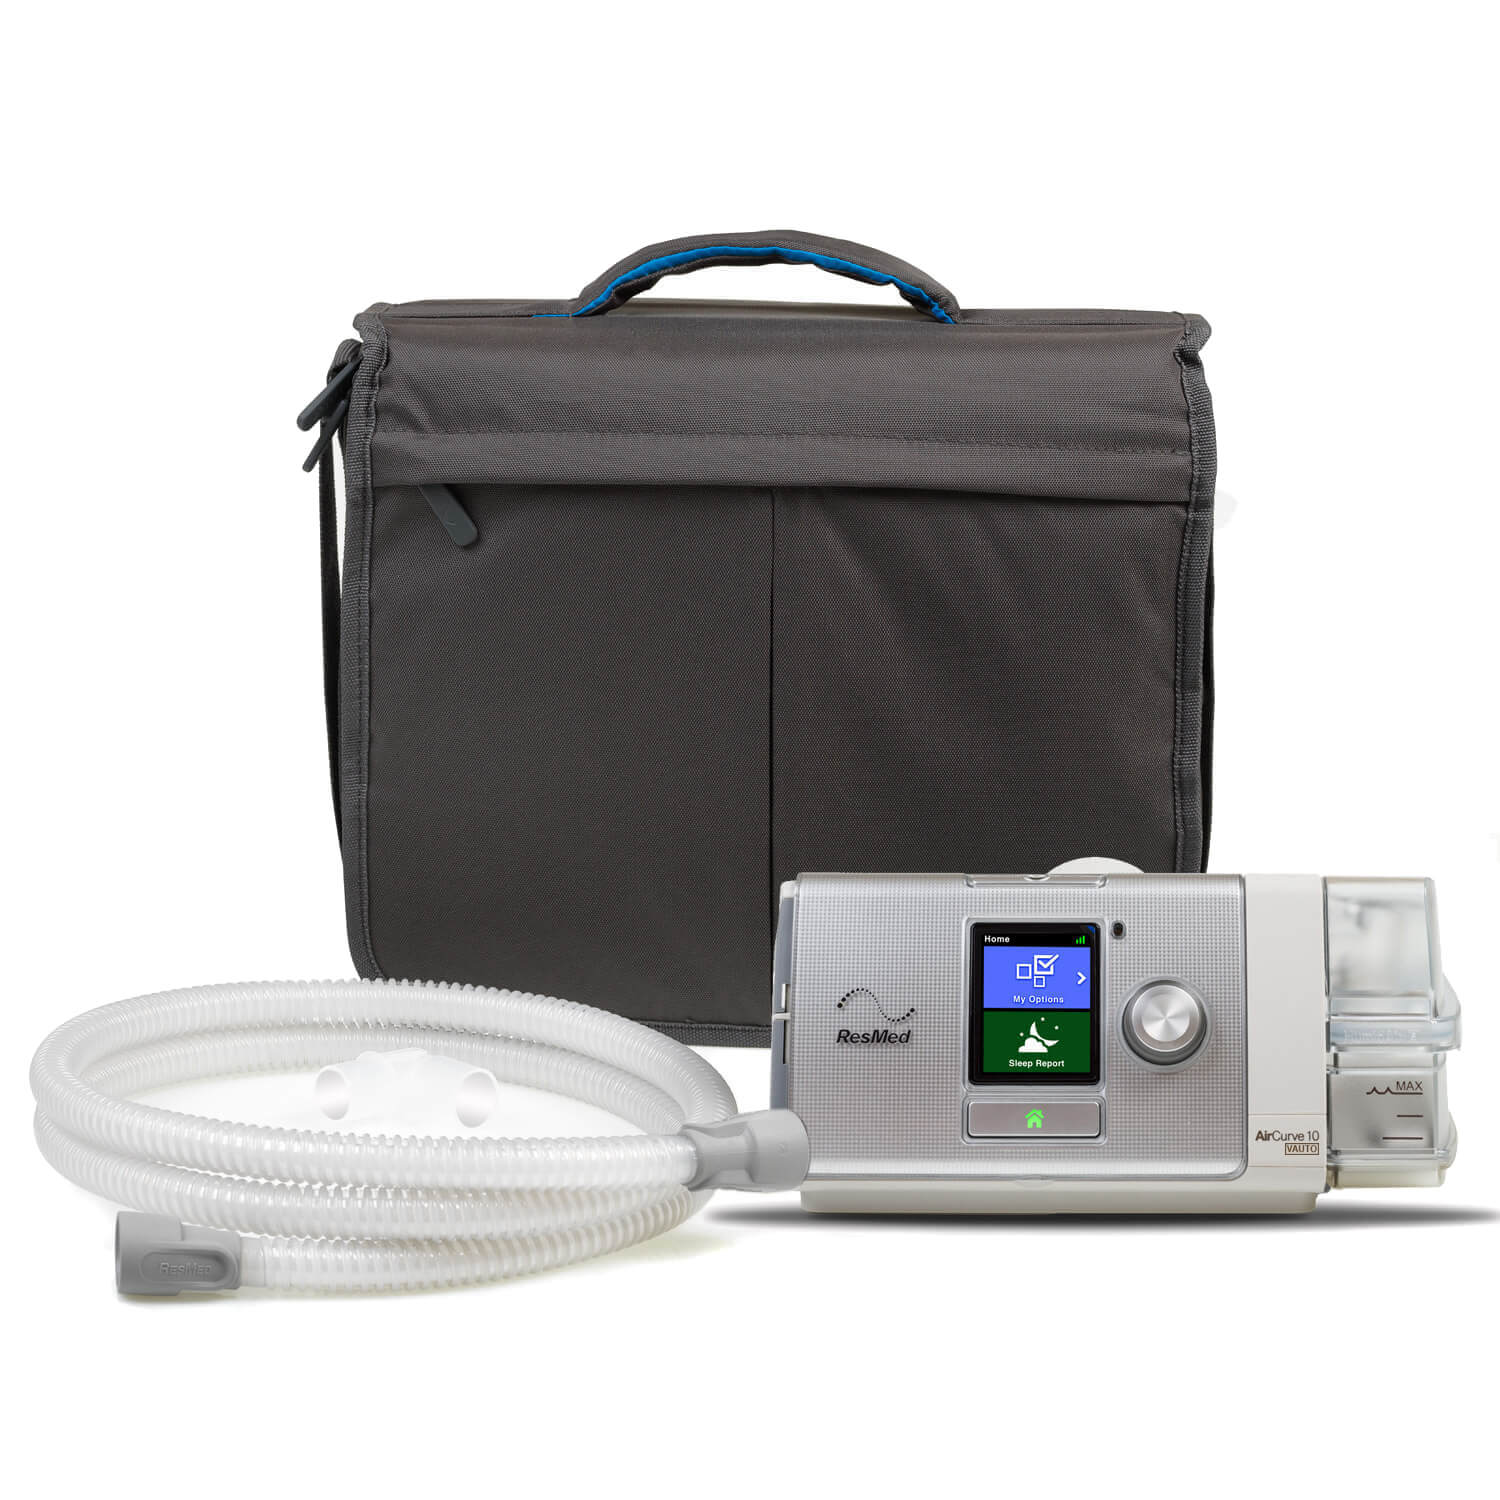 High-End Machines - Three of the Most Popular CPAP Devices Available